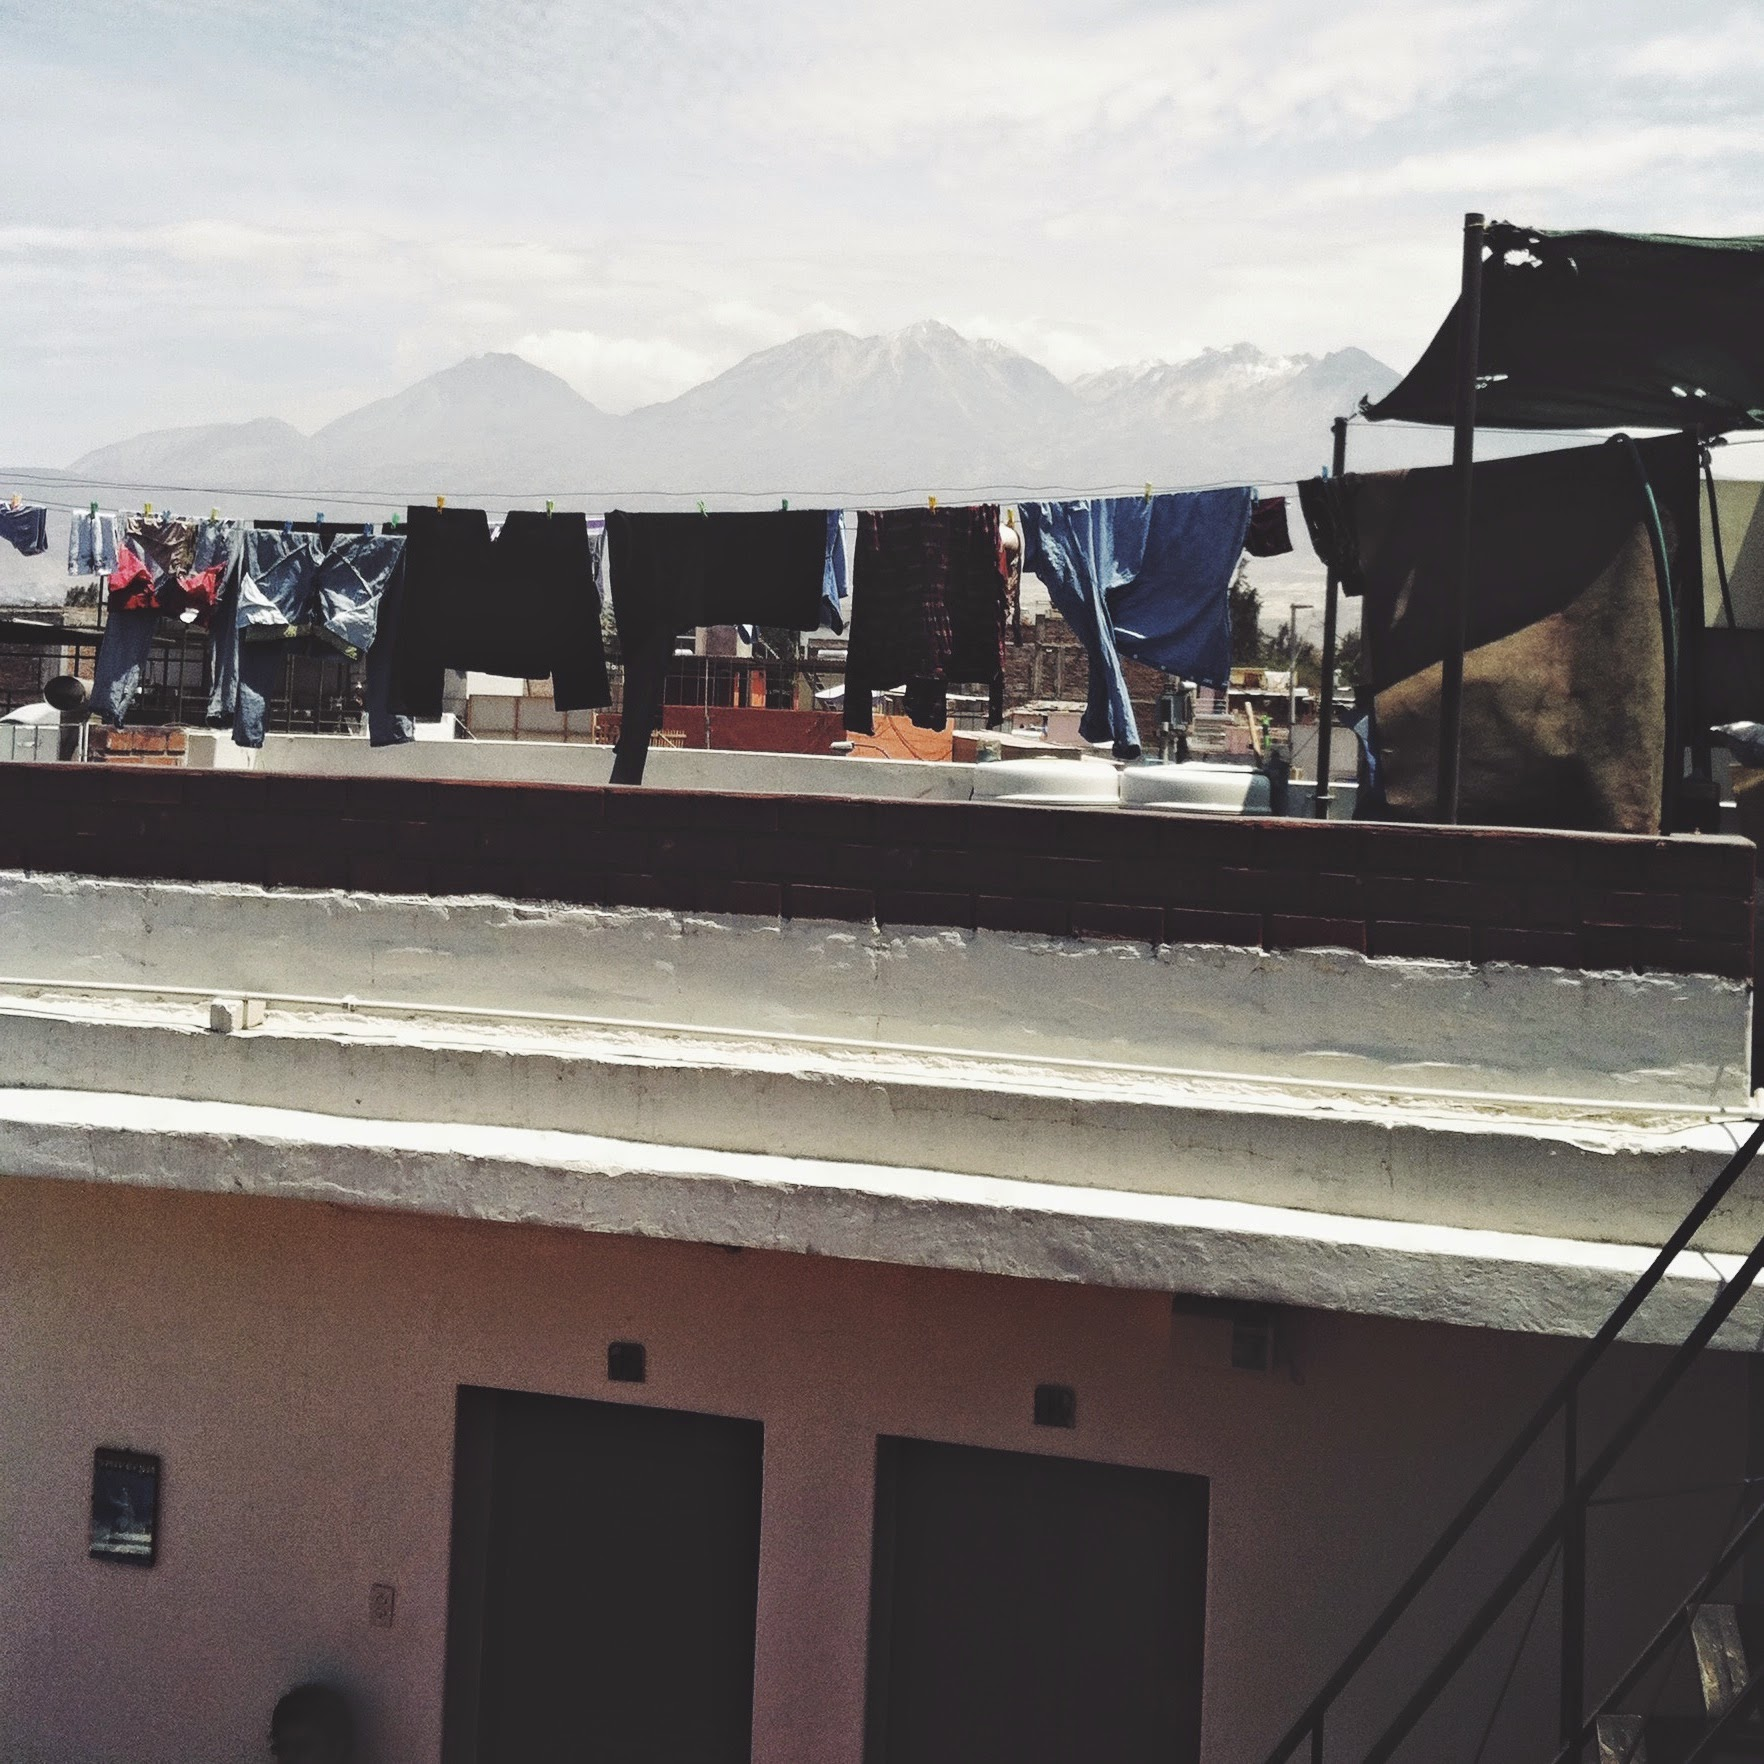 Arequipa, Peru boasts the most epic laundry backdrop to date.